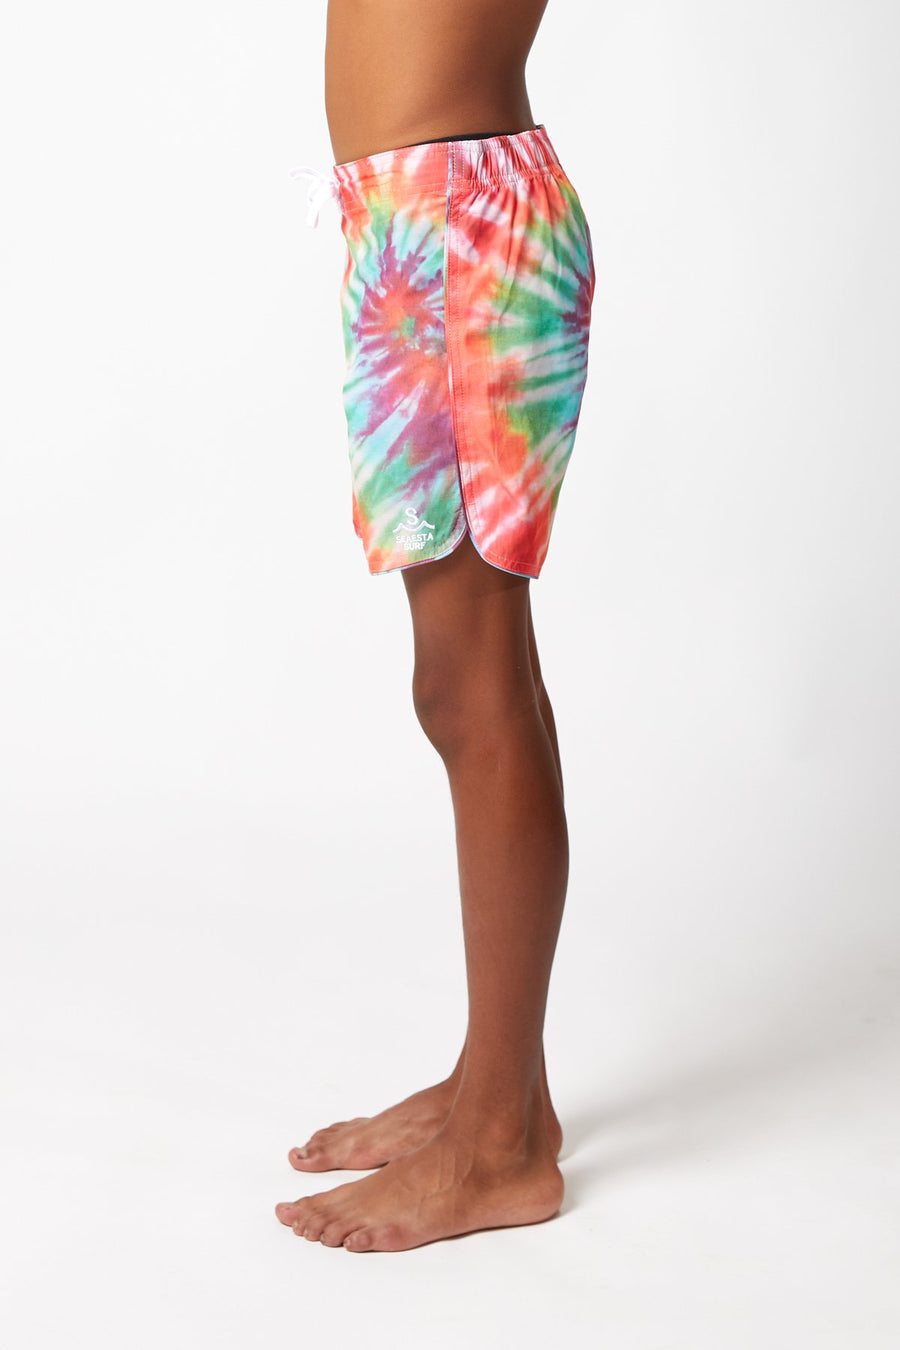 Sea Ripple / Tie Dye / Boardshorts